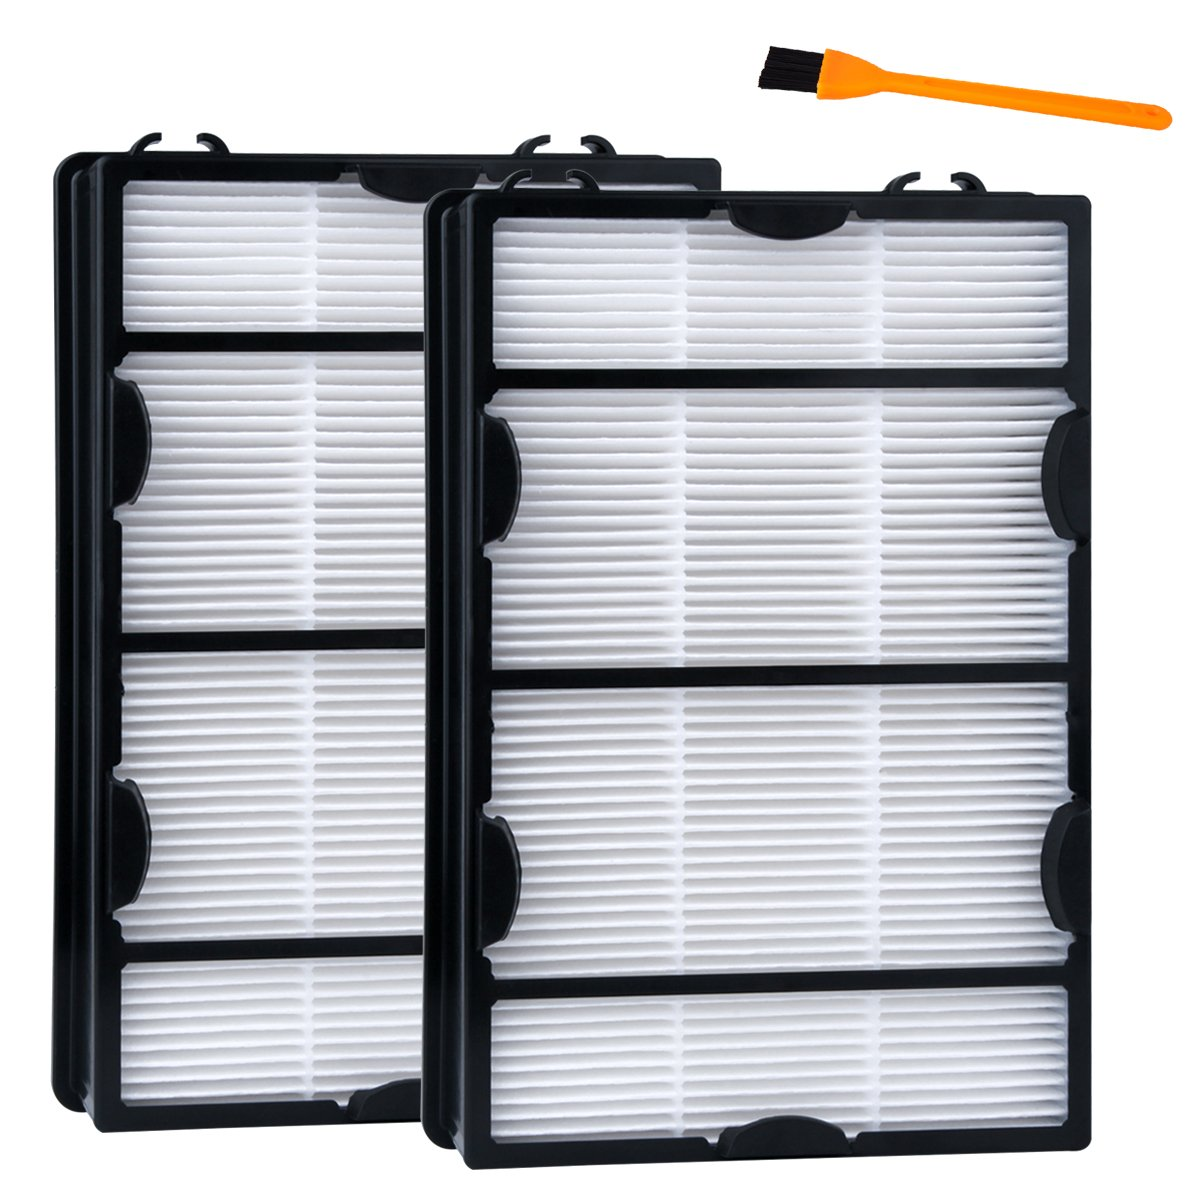 Hongfa Replacement Holmes HAPF600D (B) Air Filters, 2packs for Holmes HAPF600, HAPF600D-U2 HEPA Air Allergy Filter